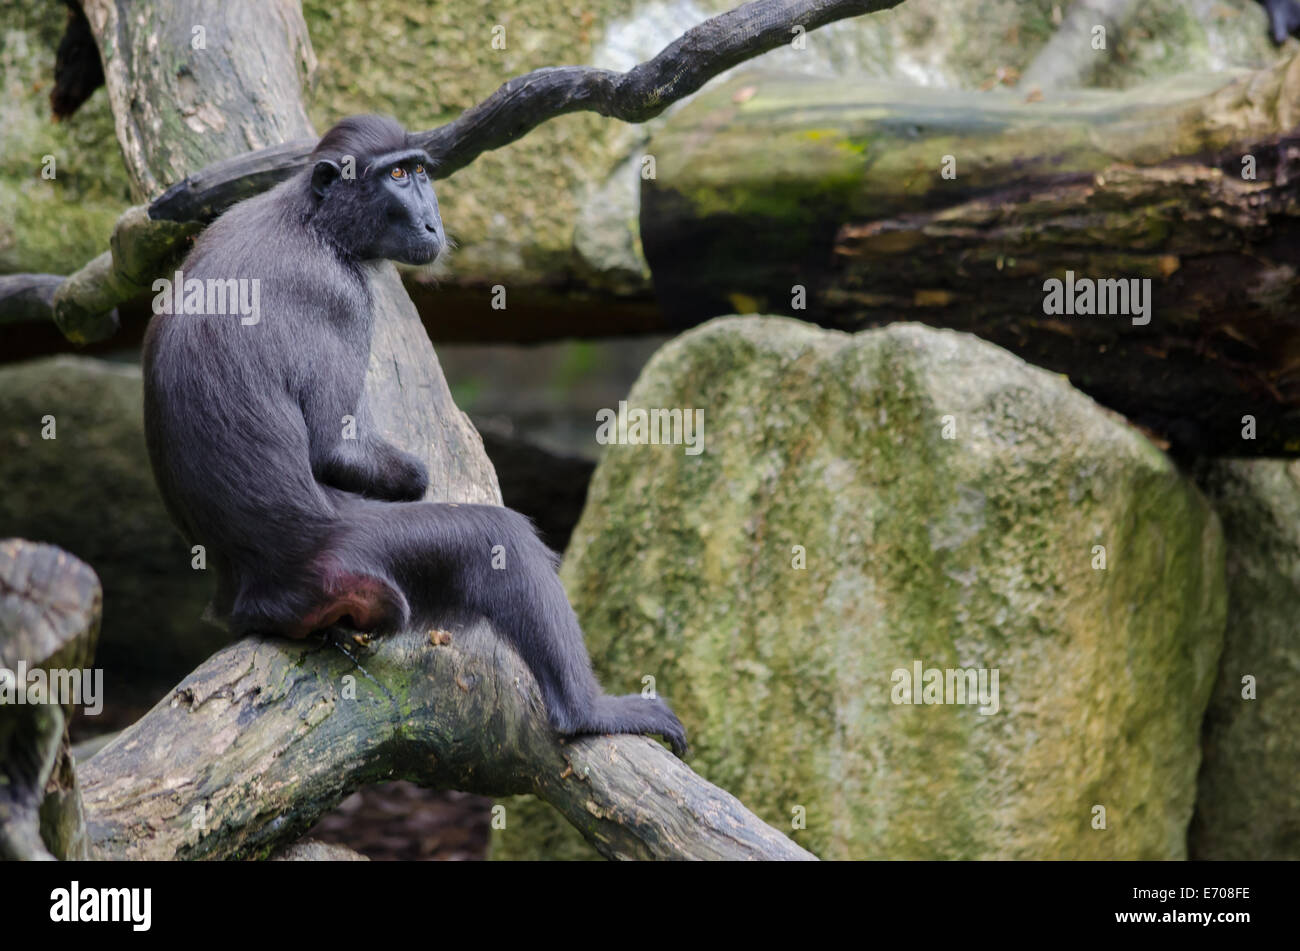 Sad looking macaca resting on a branch - Stock Image